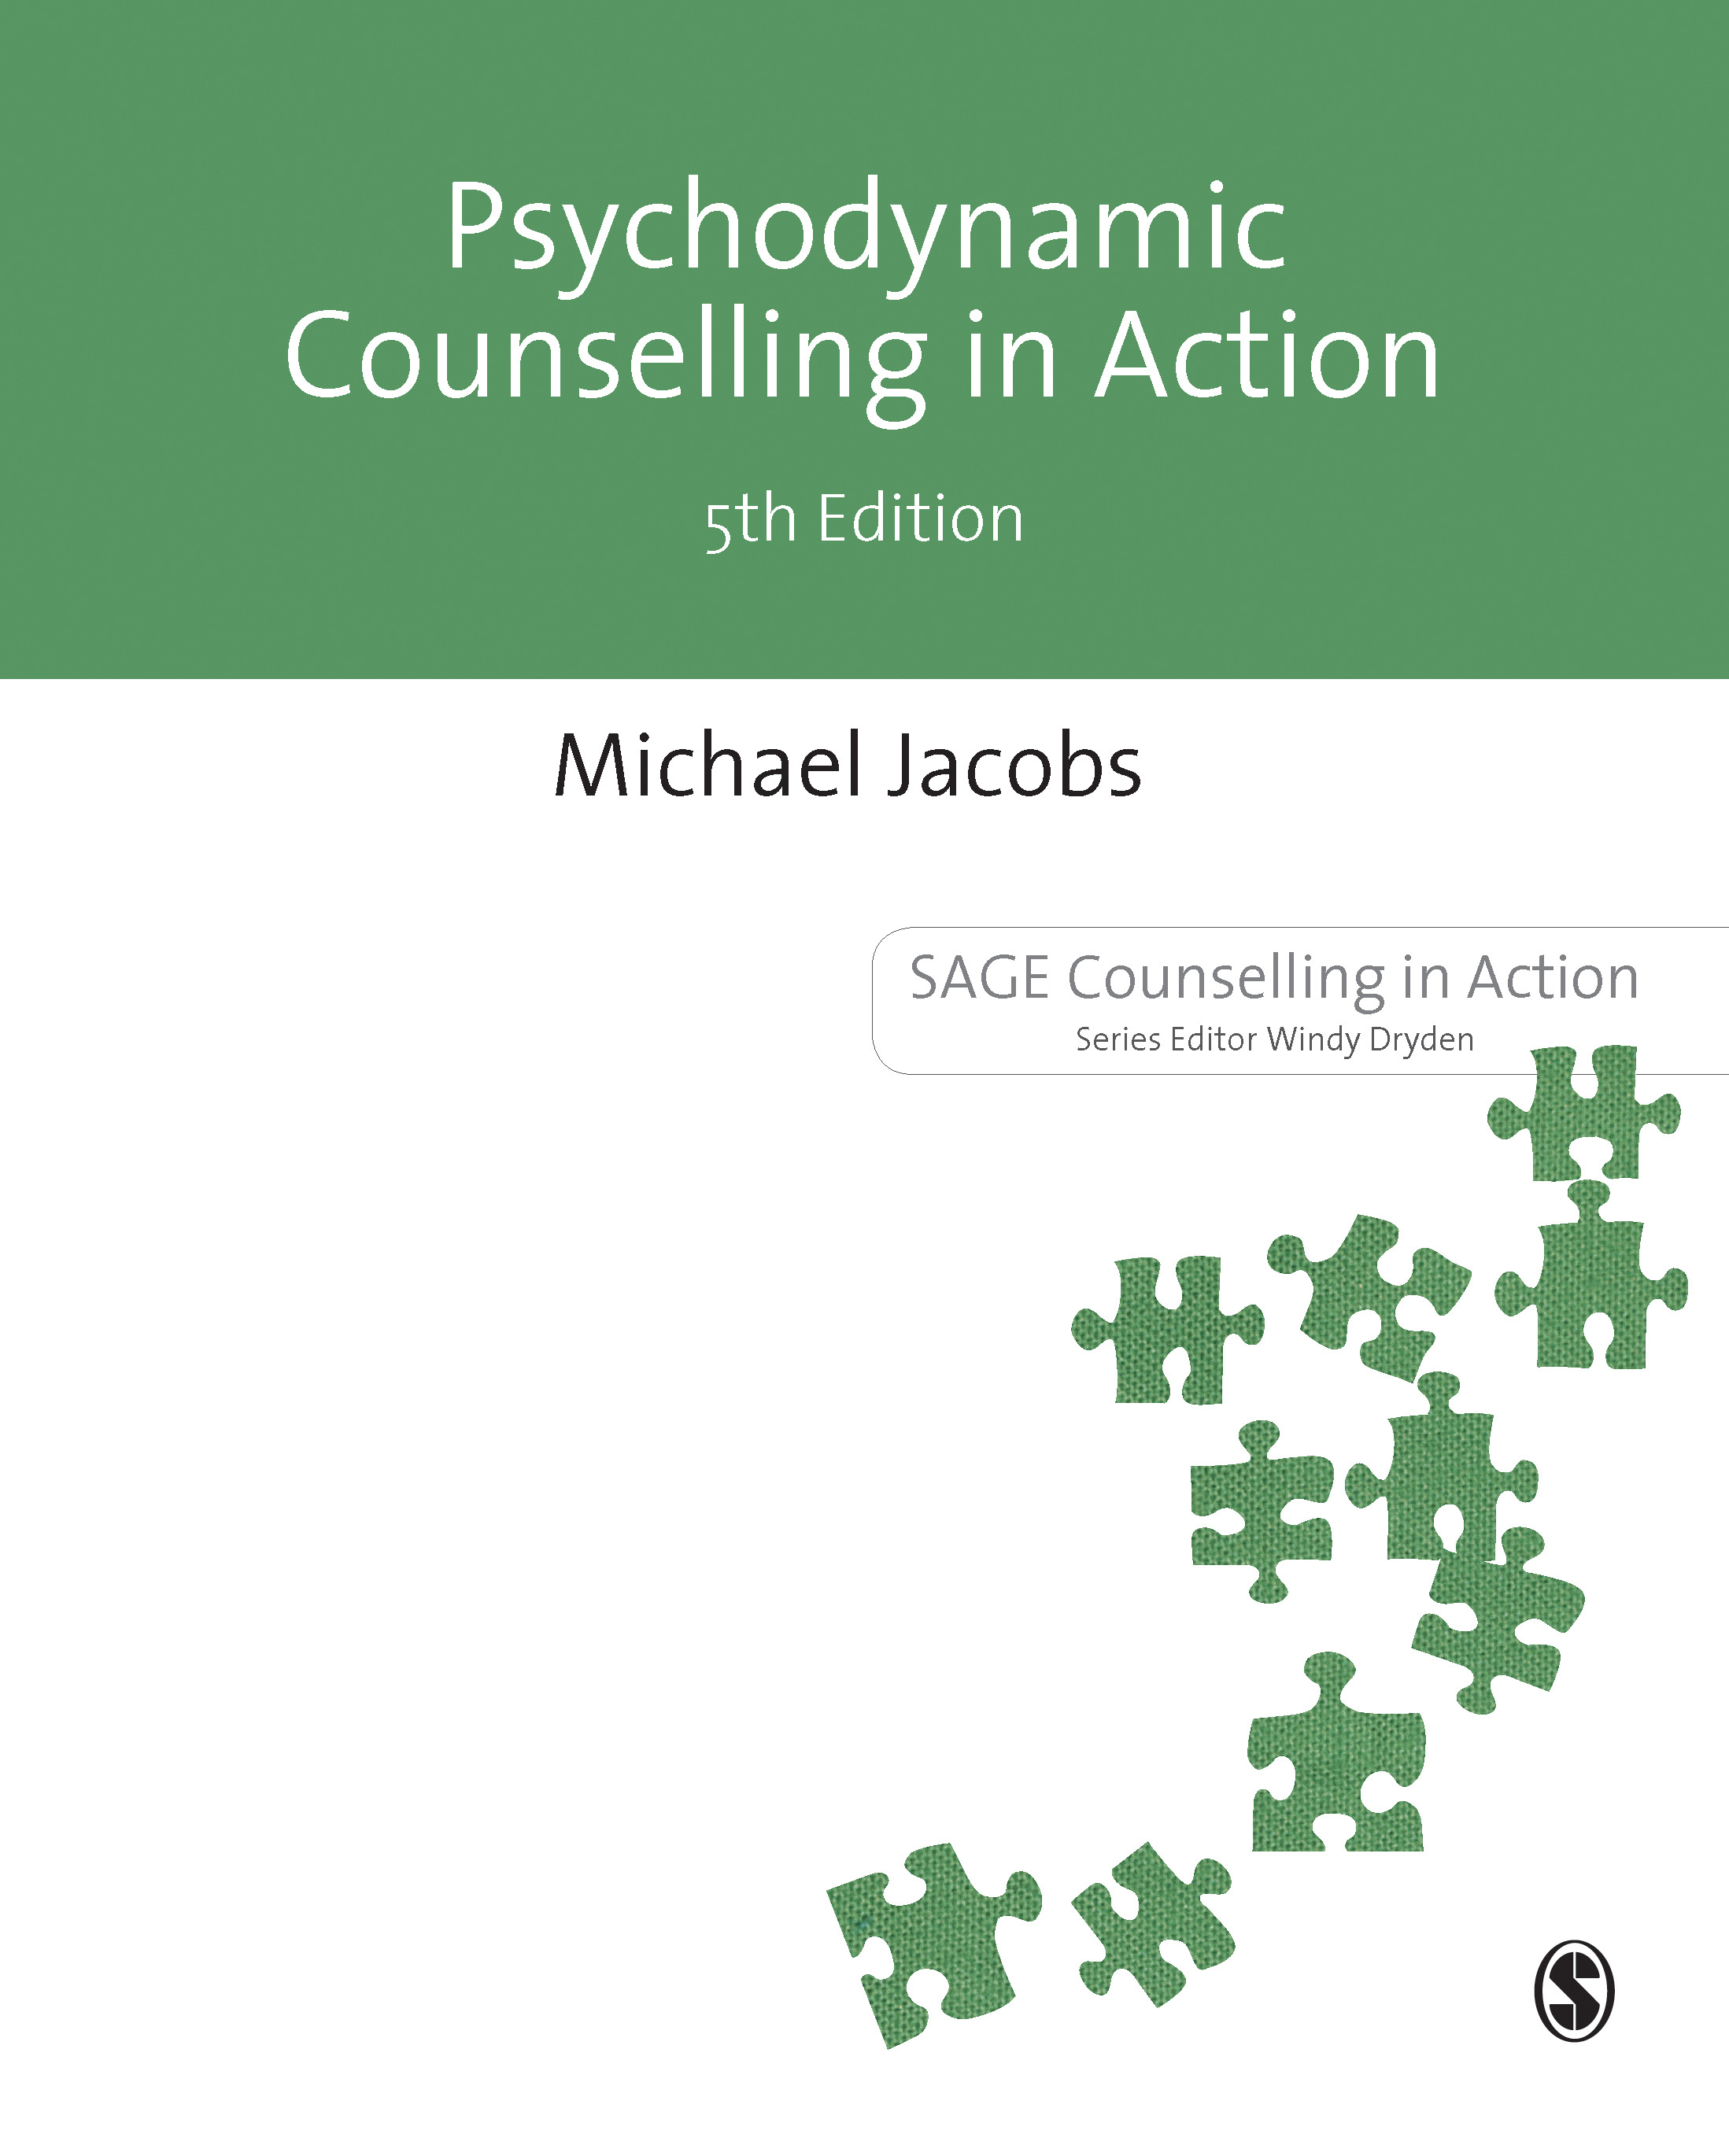 Psychodynamic Counselling in Action book cover